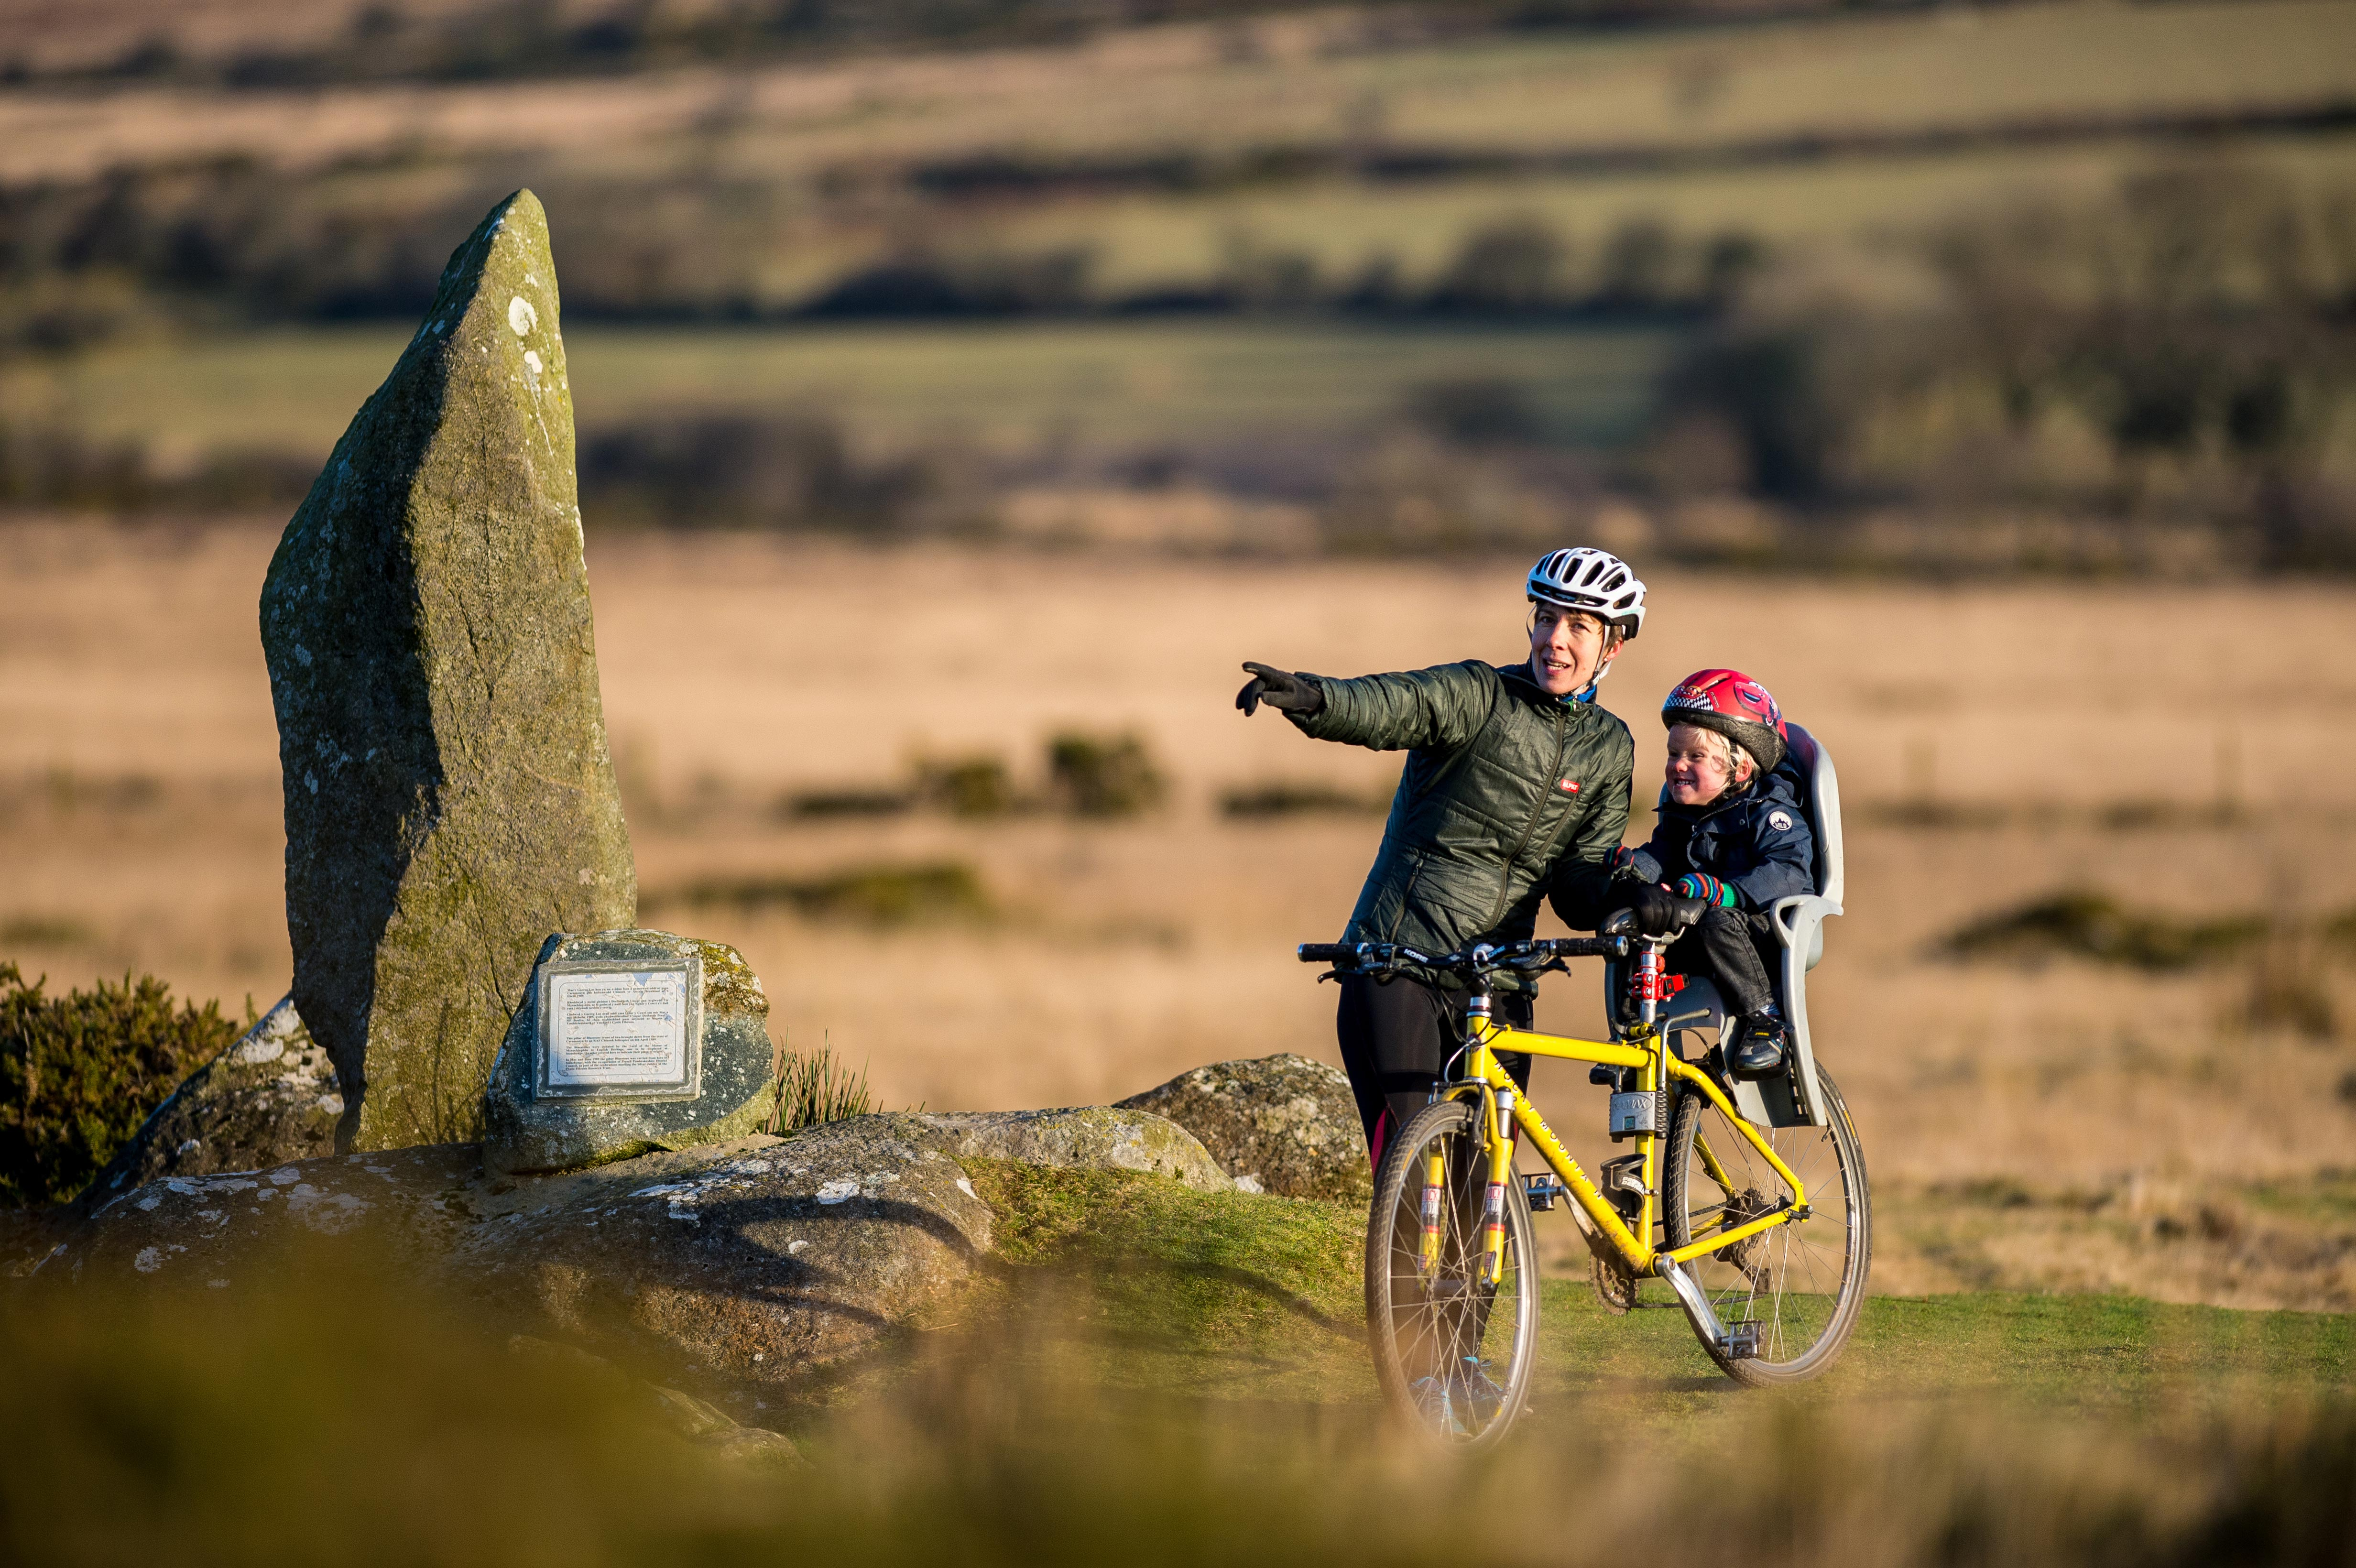 Try the new Legends Cycle Route in Wales